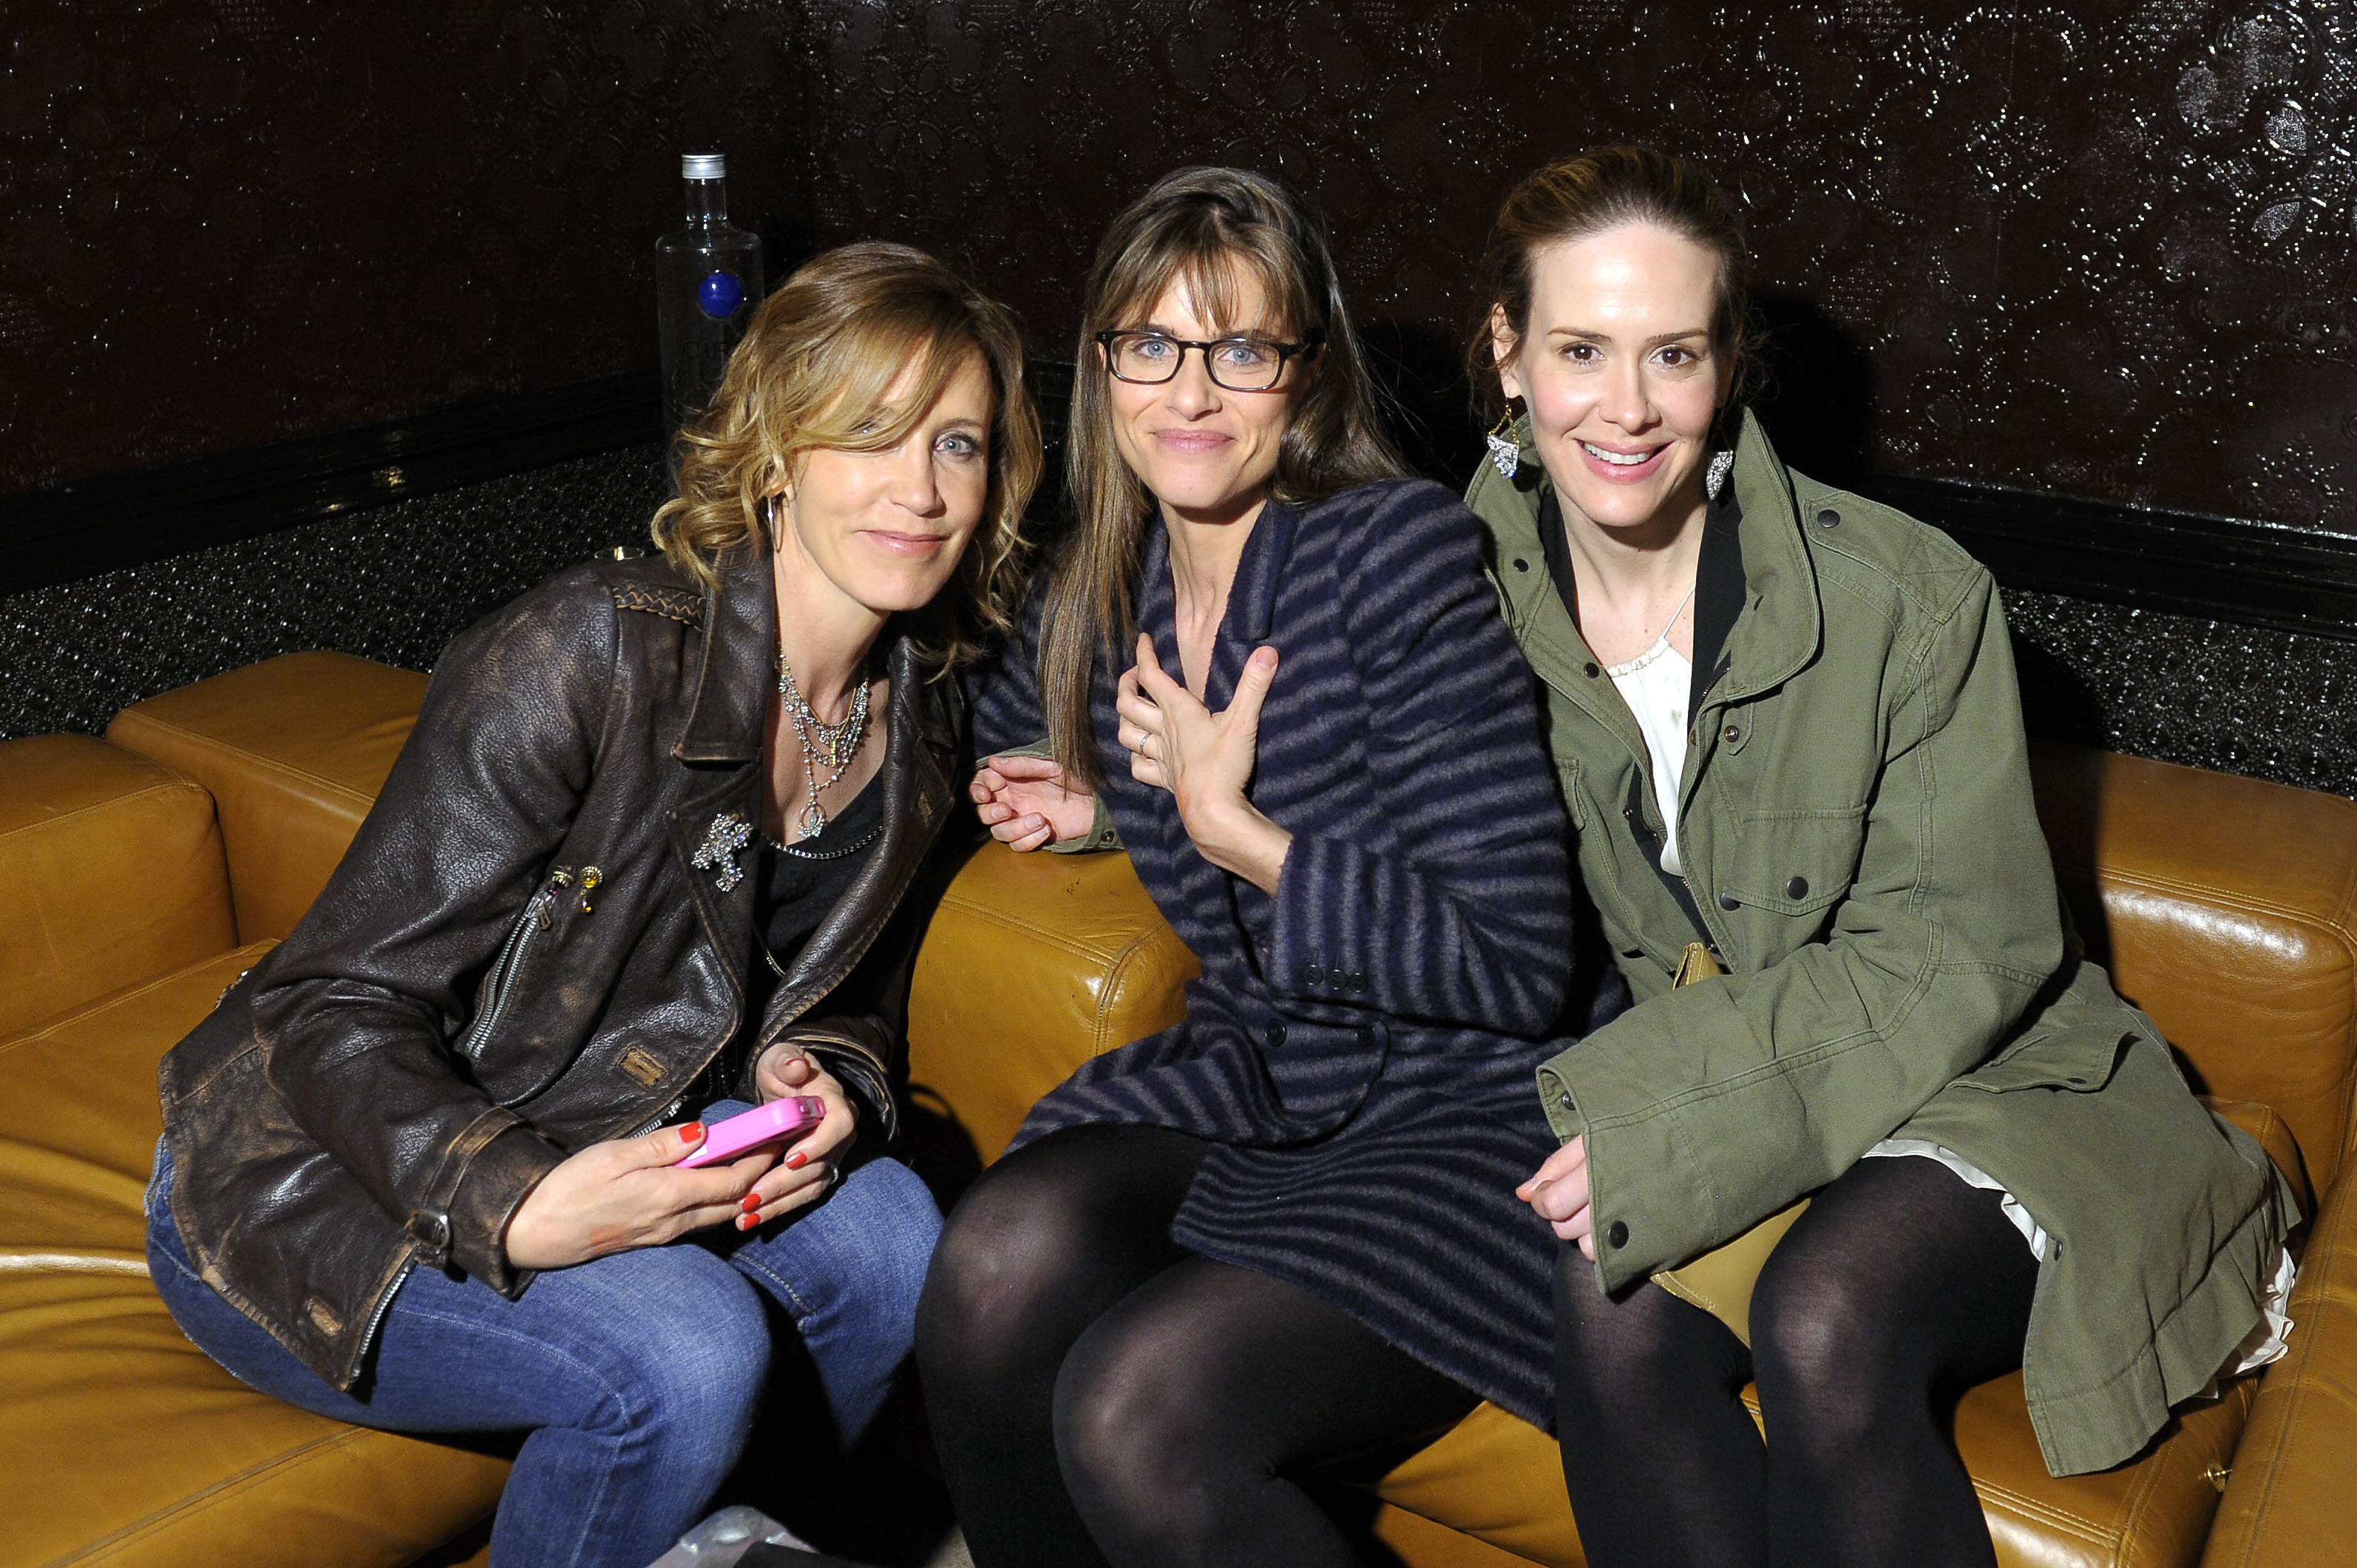 Felicity Huffman, Amanda Peet, and Sarah Paulson hung out at the Trust Me afterparty.